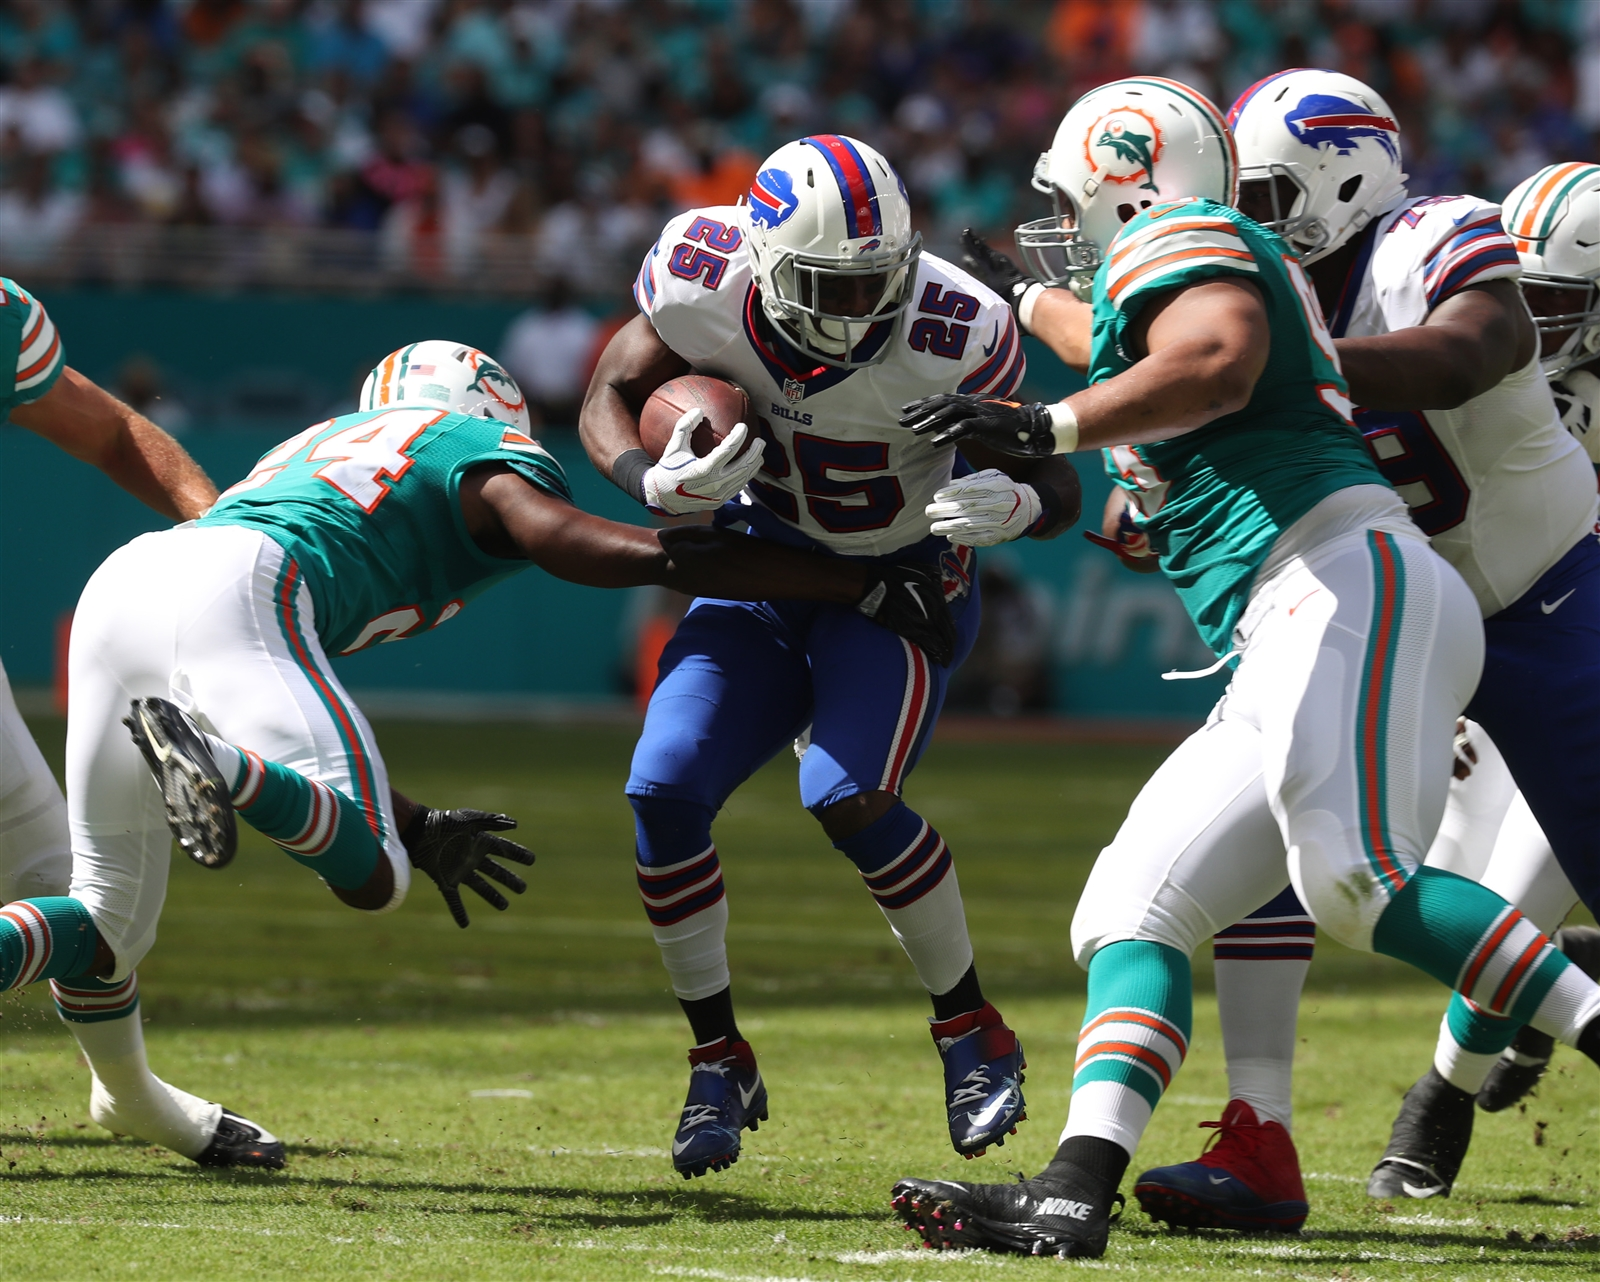 LeSean McCoy has had to do a lot of work on his own this season. (James P. McCoy/Buffalo News)